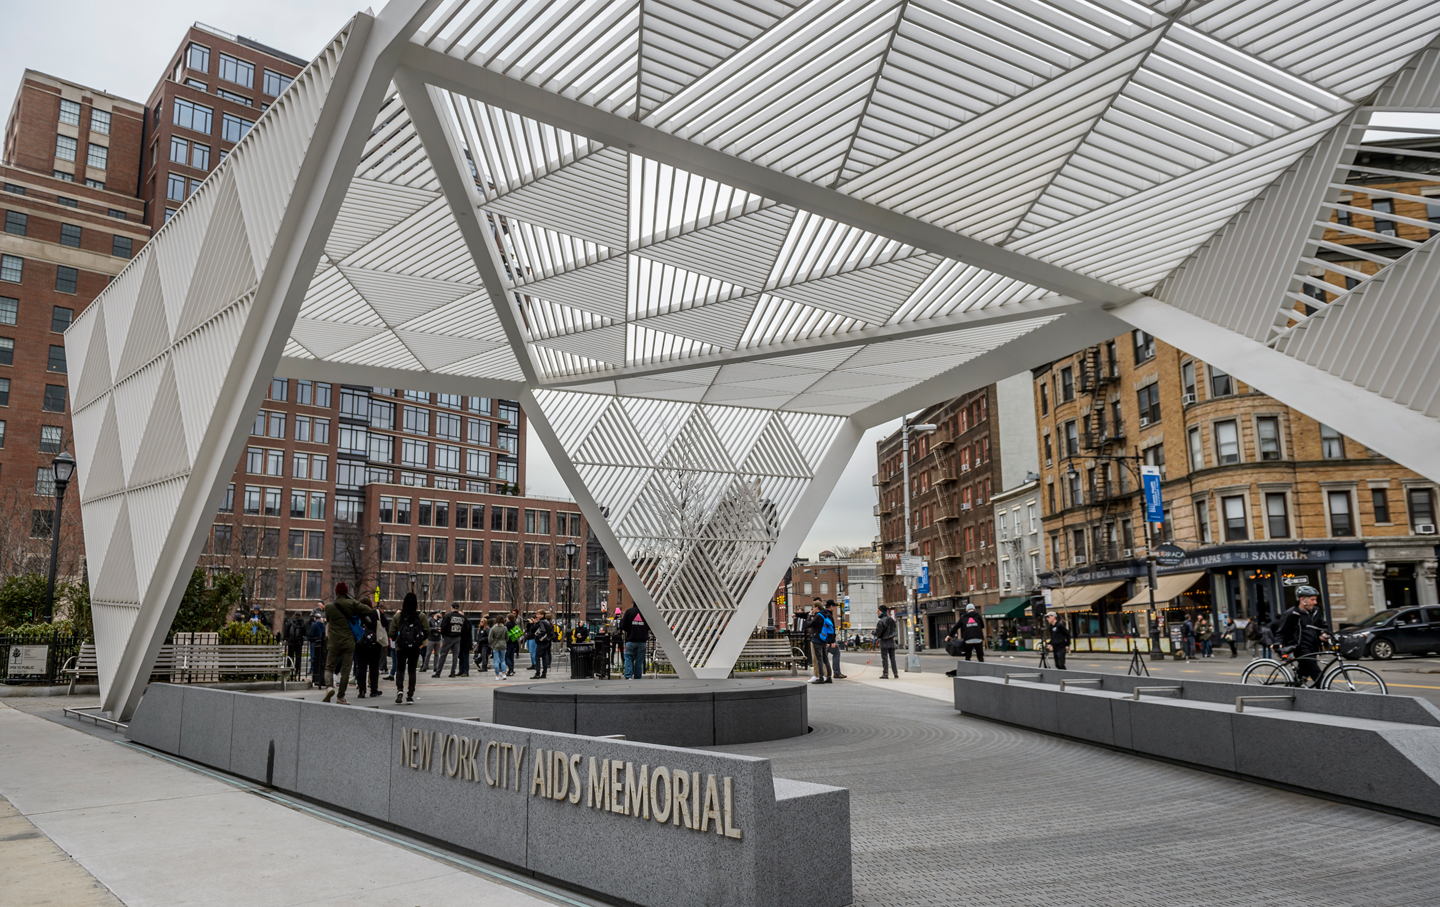 New-York-City-AIDS-Memorial-ap-img